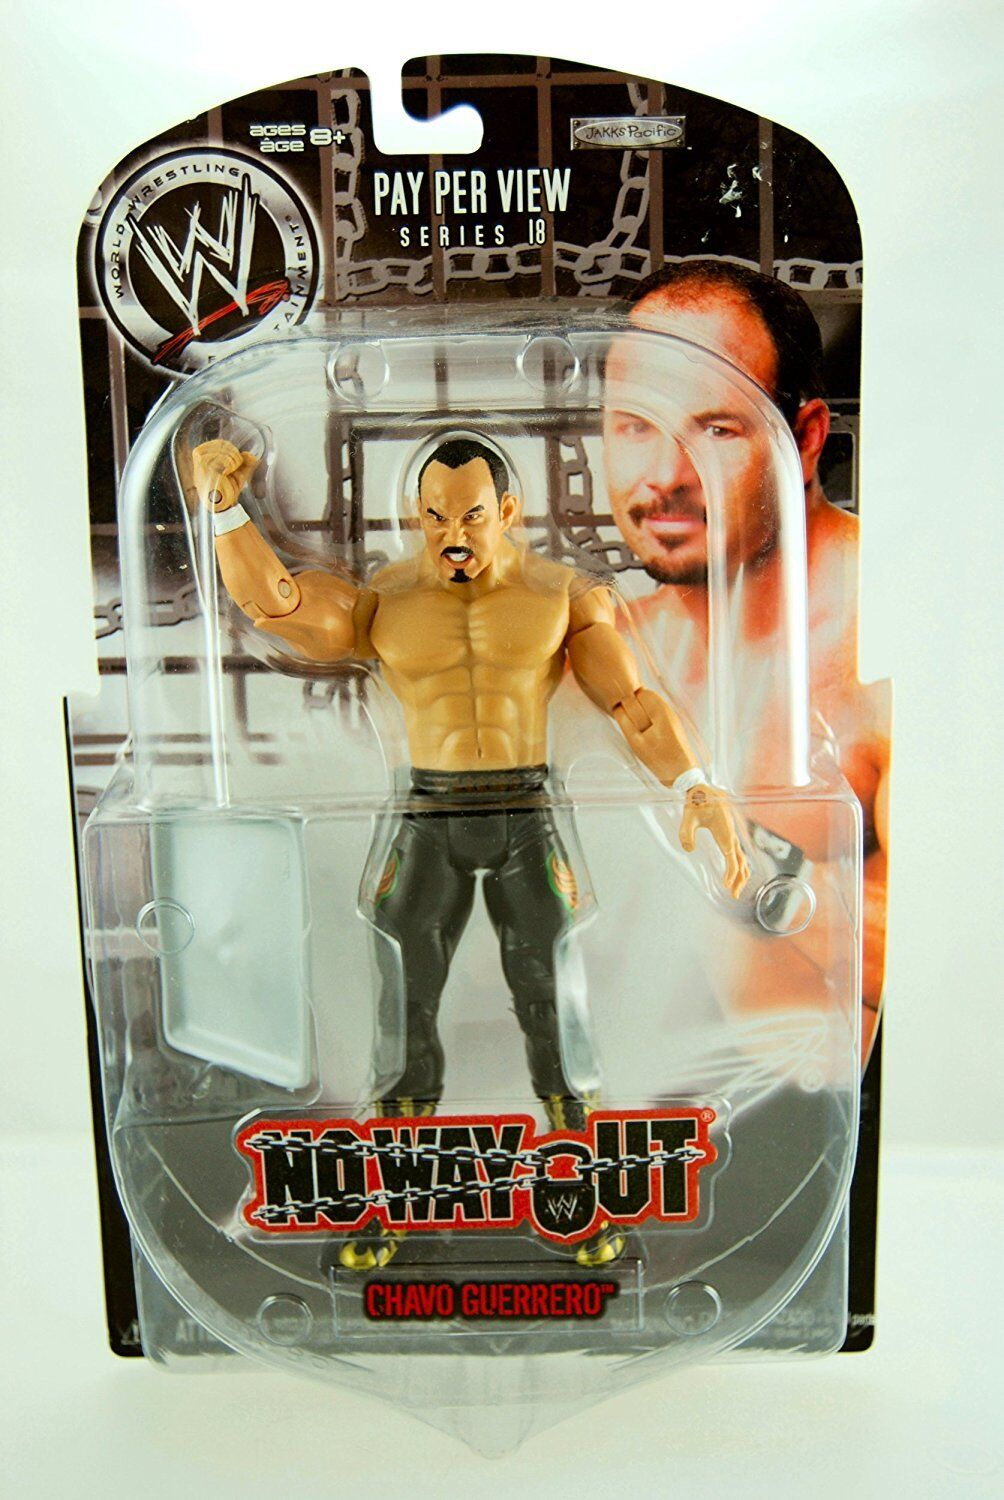 WWE 2008 NO WAY OUT PPV SERIES 18 CHAVO GUERRERO